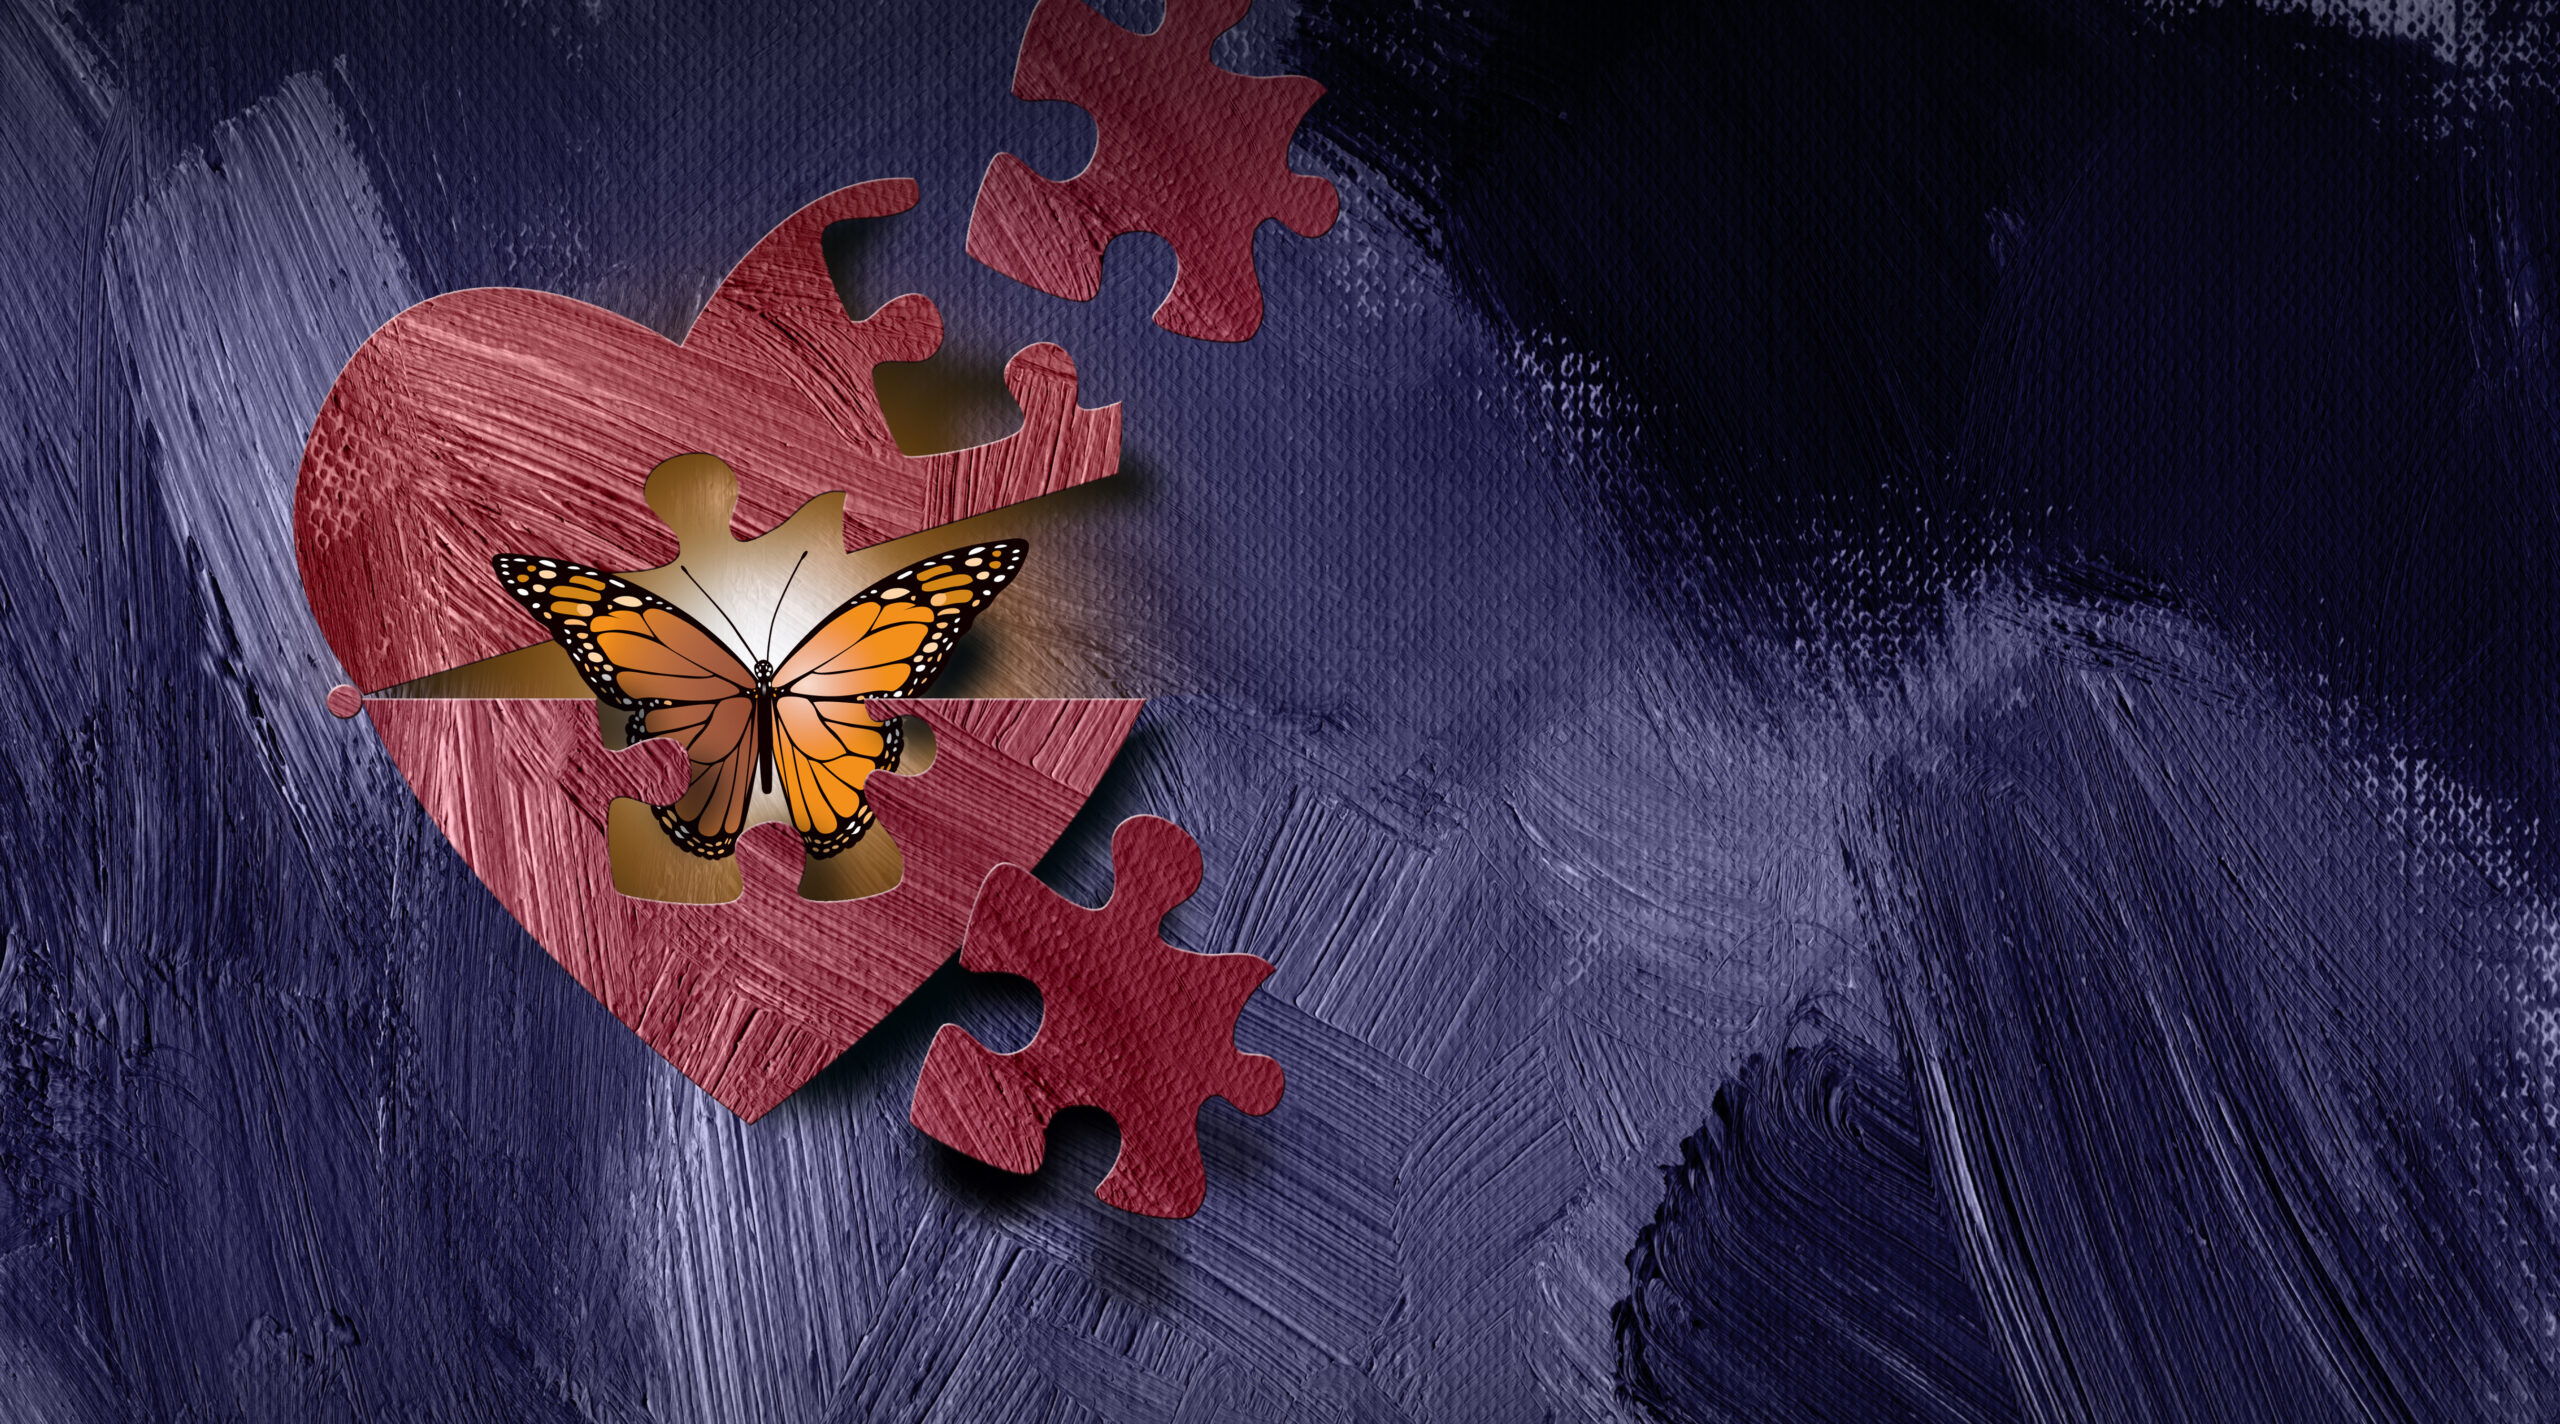 Graphic illustration of iconic butterfly emerging out of heart through a puzzle piece shape. Art applicable for various metaphoric concepts of emotions and feelings ranging from sadness and shyness to happiness and self confidence.